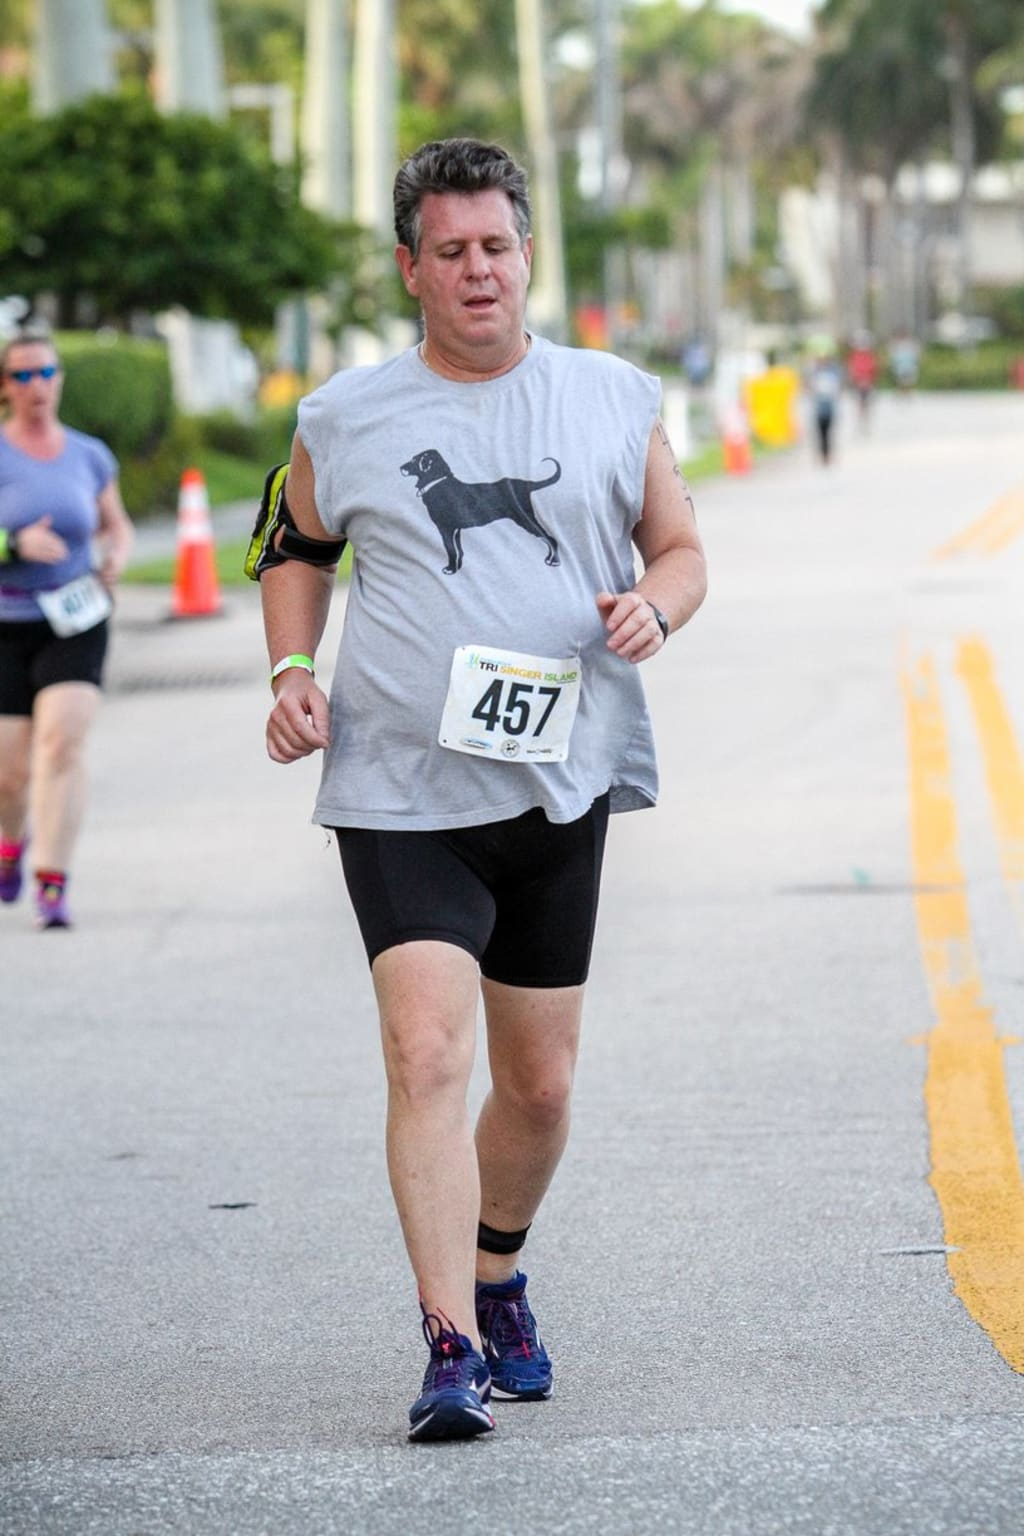 The Man Most Unlikely to Be an Athlete… at 58